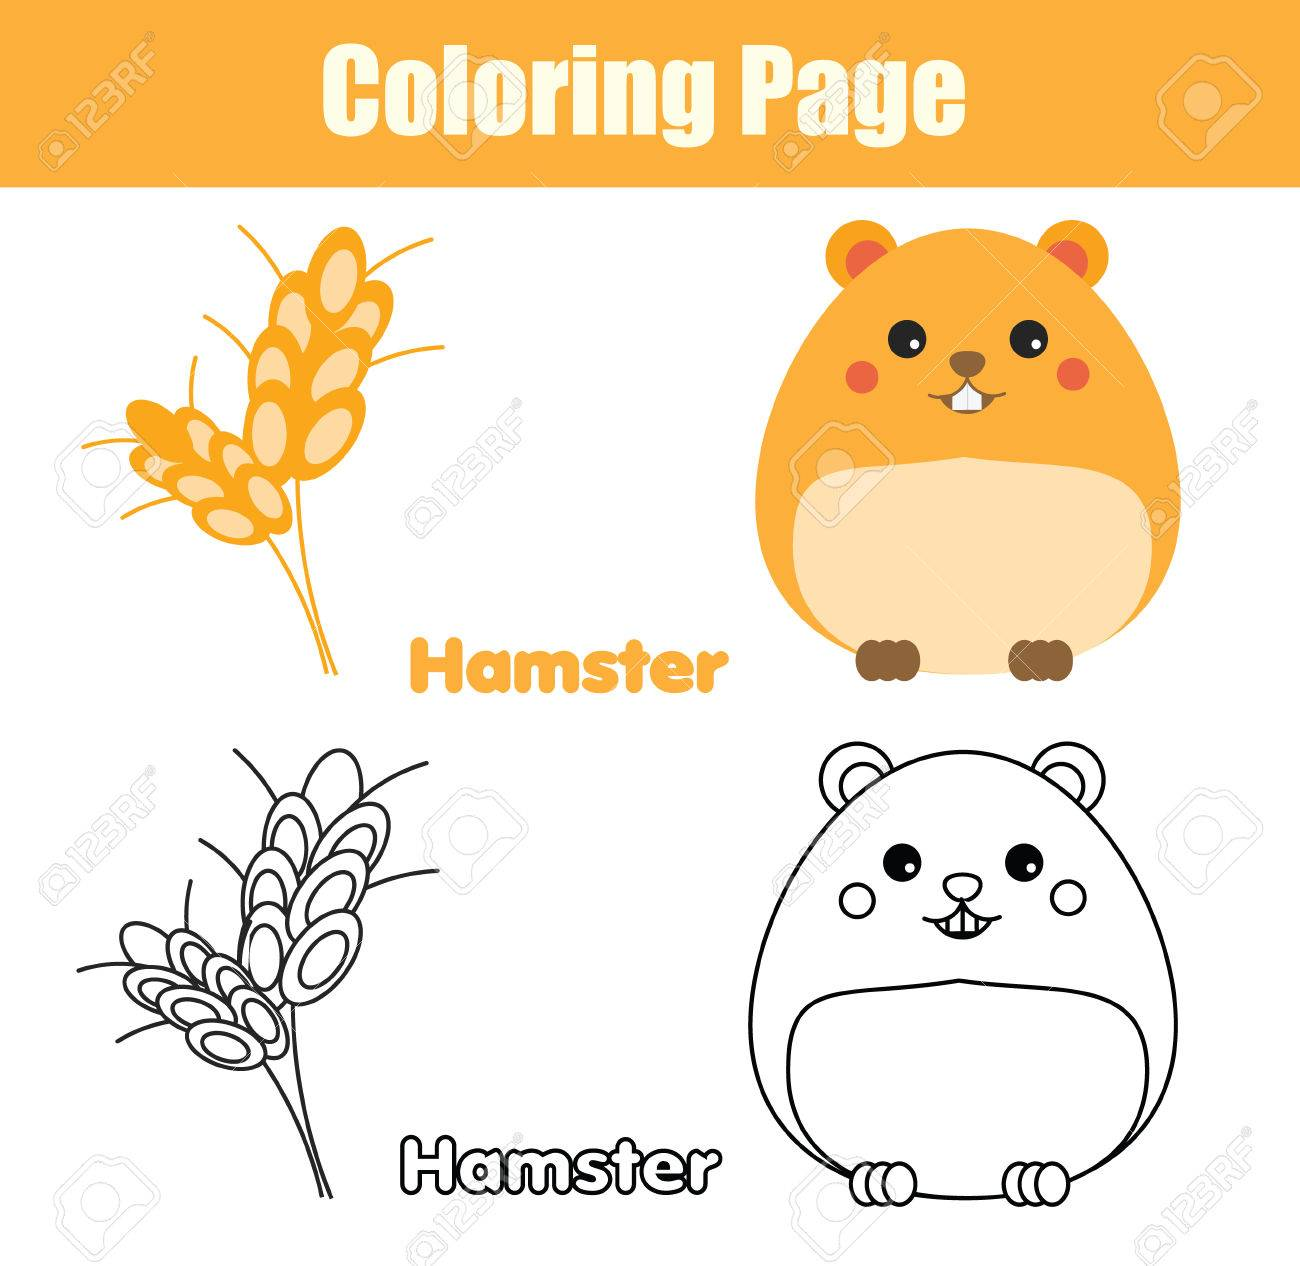 Coloring Page With Hamster Color The Fish Drawing Activity Educational Game For Pre School